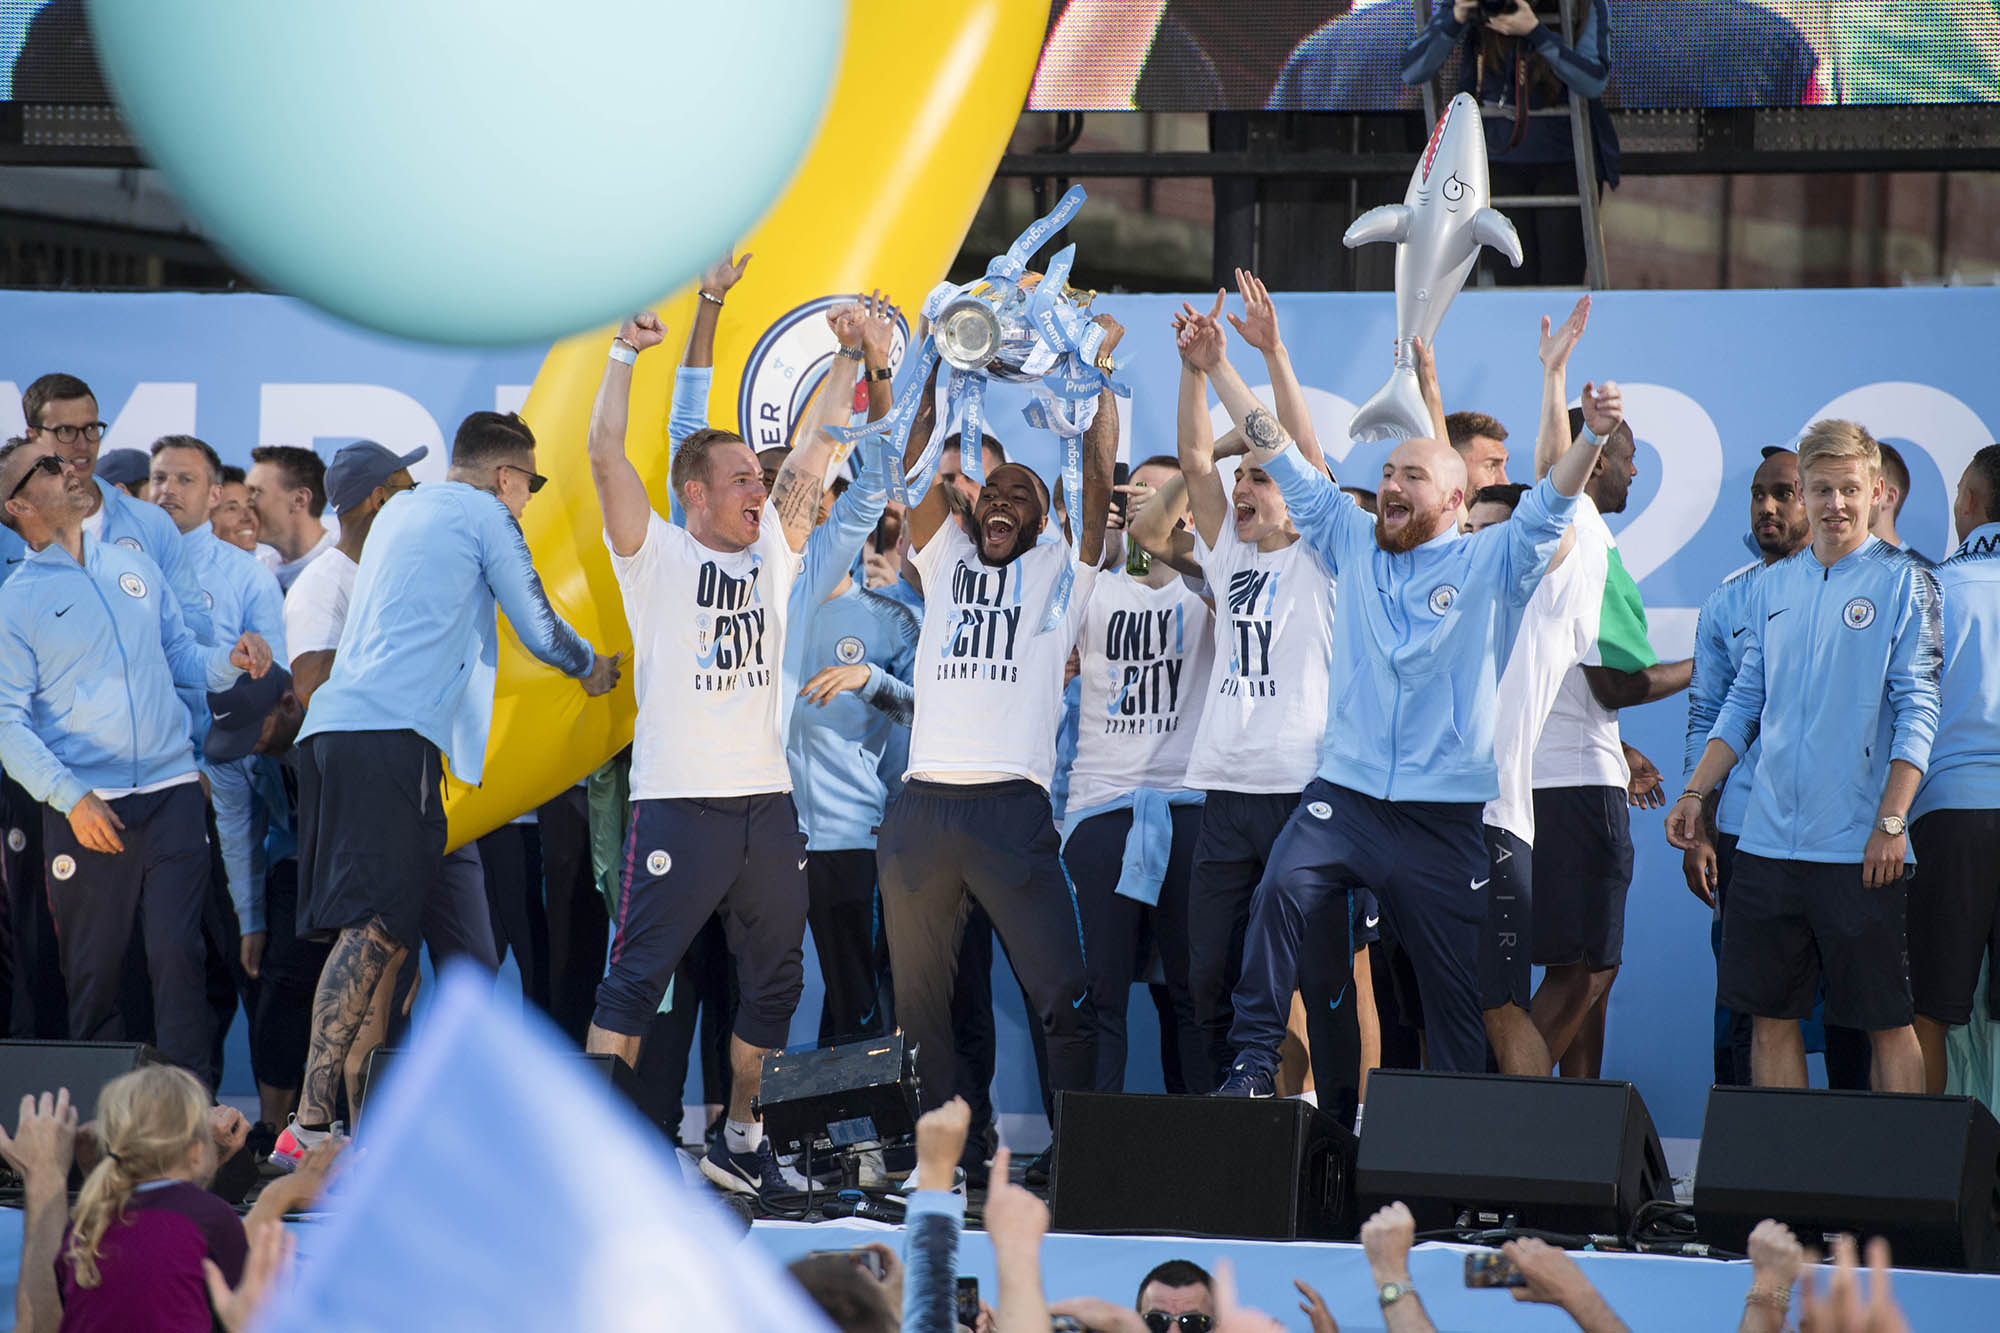 Image ©Licensed to Manchester Evening News / Jon Parker Lee Manchester City celebrate their historic FA Premier League title win with a trophy parade through the streets of Manchester on Monday 14 May 2018. Picture by Jon Parker Lee